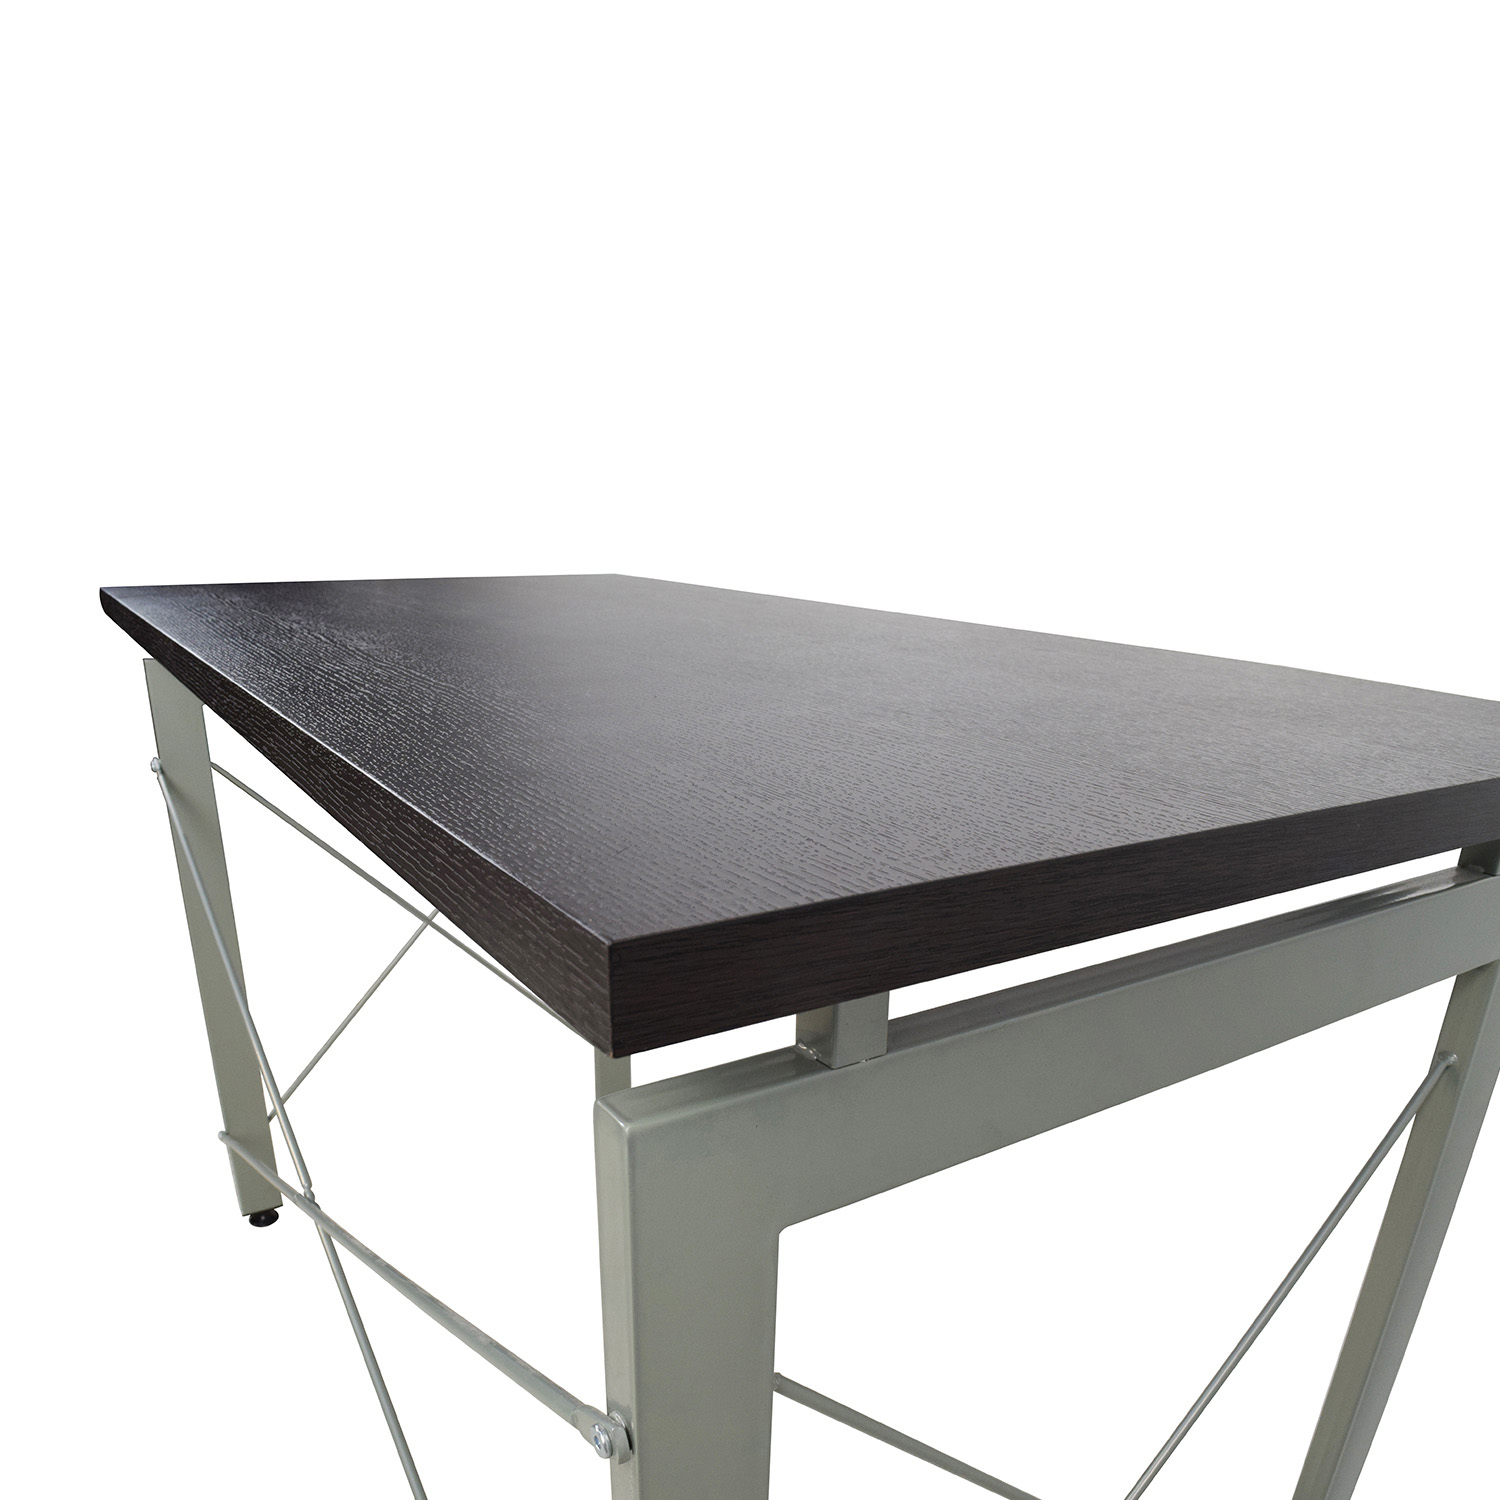 39 off all modern all modern wood and metal desk tables for Metal desk with wood top